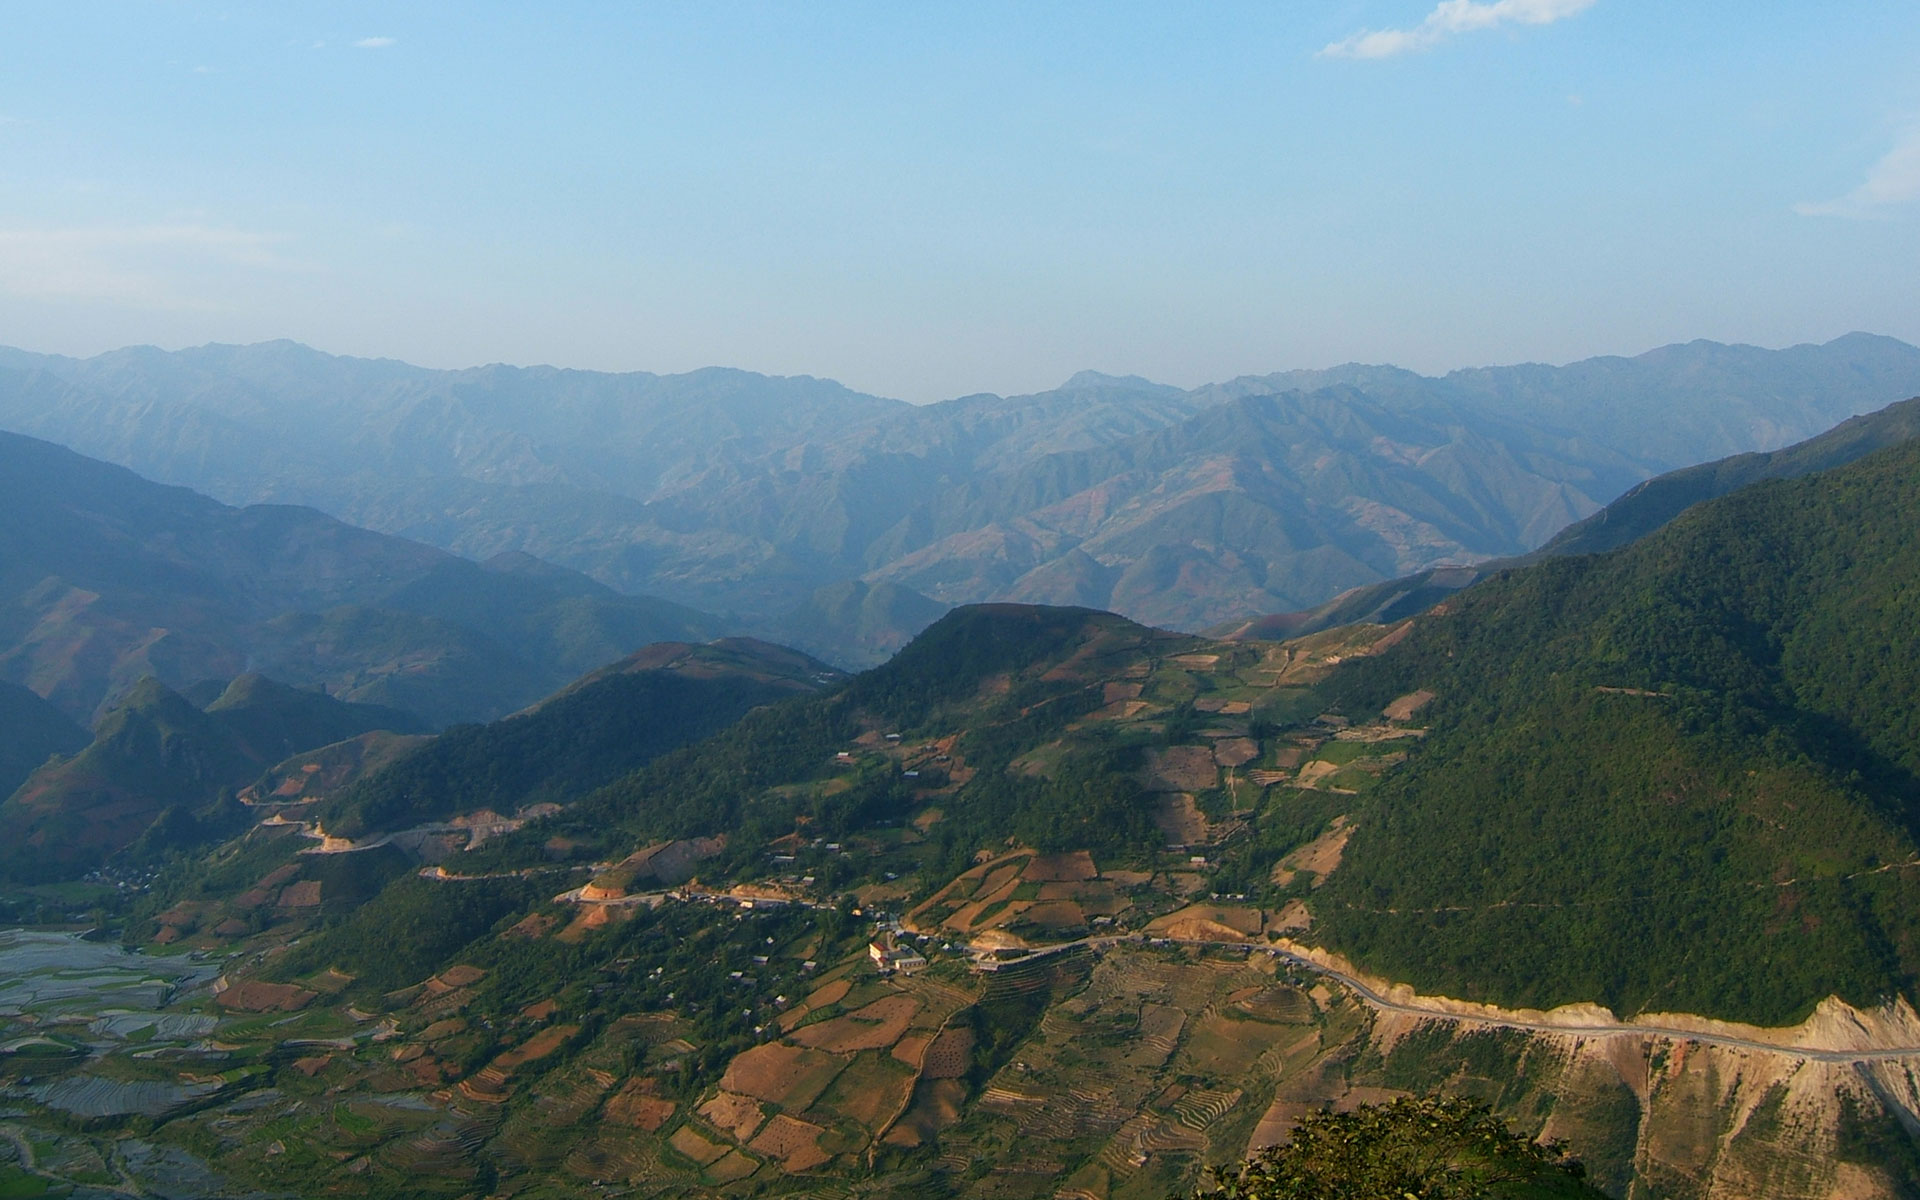 Khau Pha Pass in Yen Bai is one of the four greatest passes in northwest Vietnam.